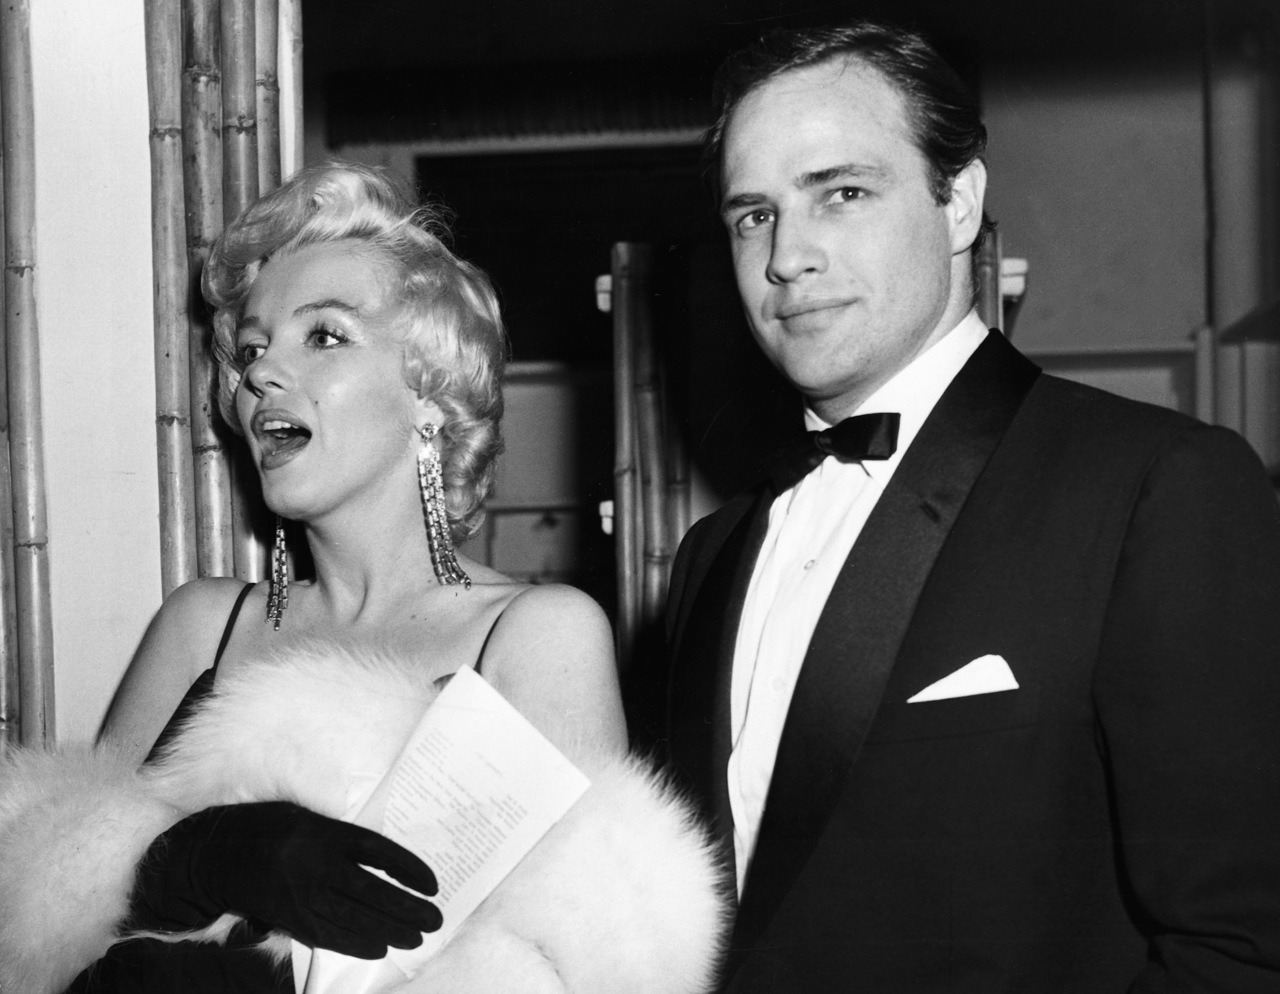 suicideblonde:  Marilyn Monroe and Marlon Brando at the premiere of The Rose Tattoo, December 13th, 1955